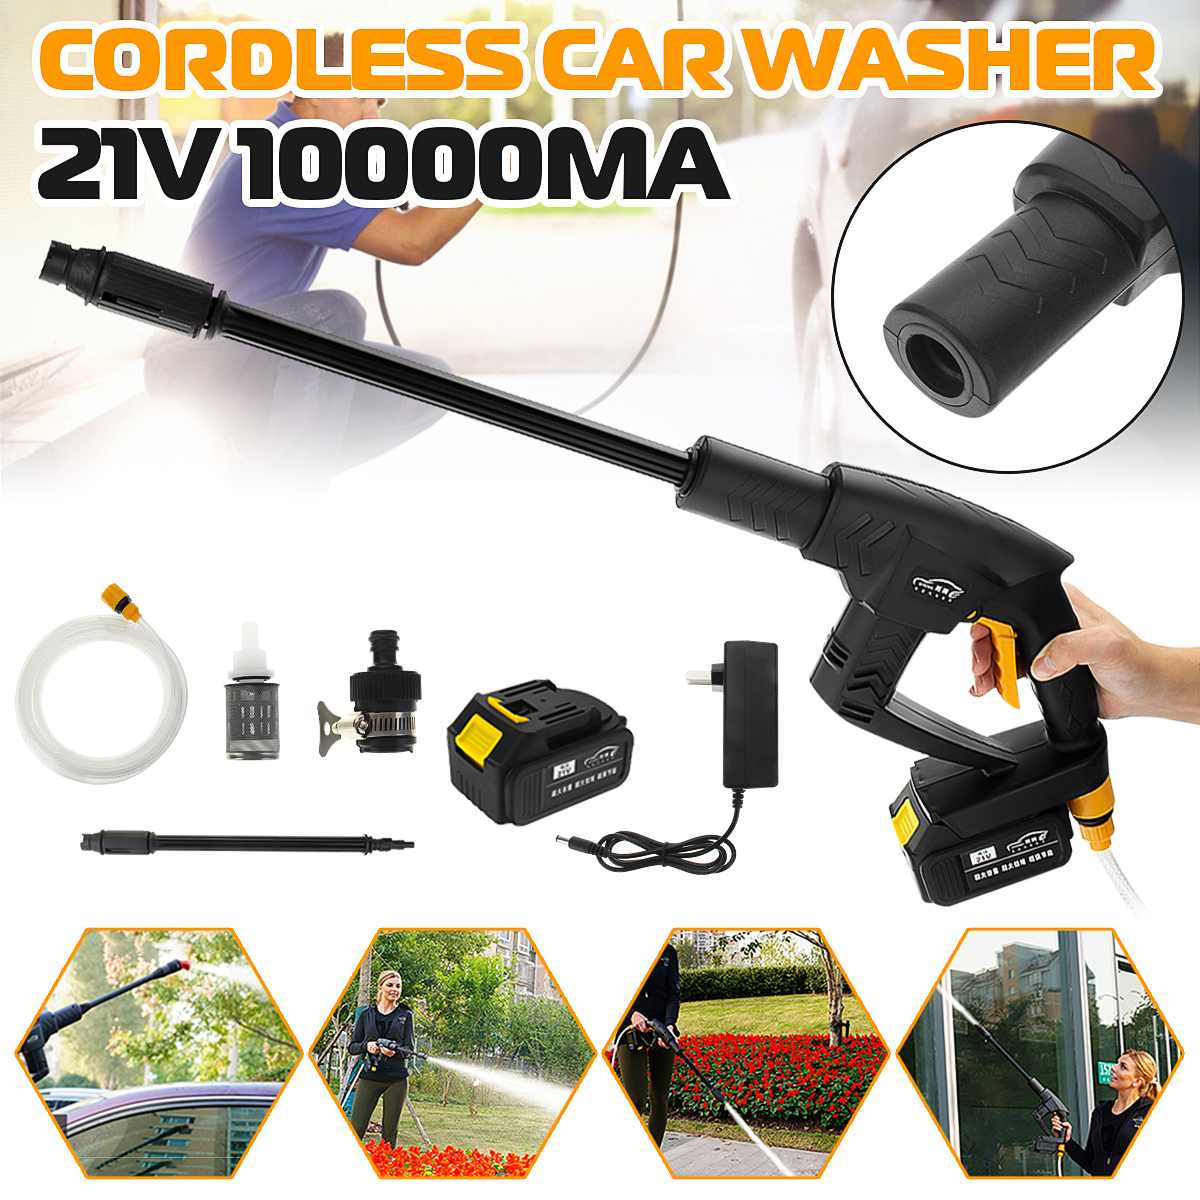 7-12pcs/set 21V Cordless Rechargeable Car Washer Mashine 0.9Mpa High Pressure Nozzle Hose Cleaner+ 10000mA Battery Washing Pump